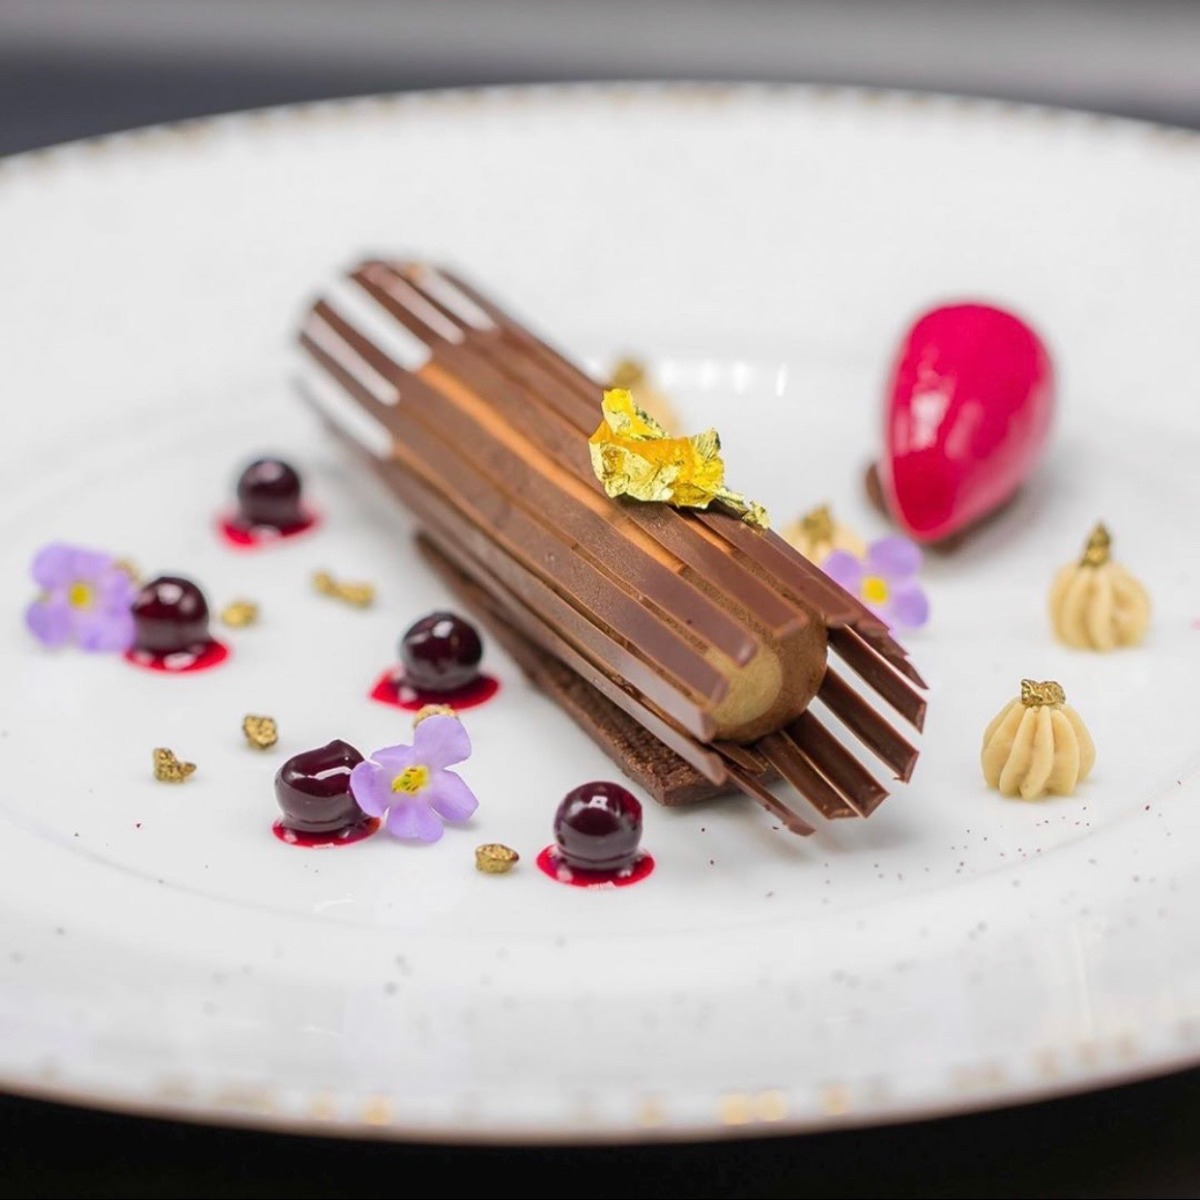 PLATED DESSERTS BY GHAYA F. OLIVEIRA